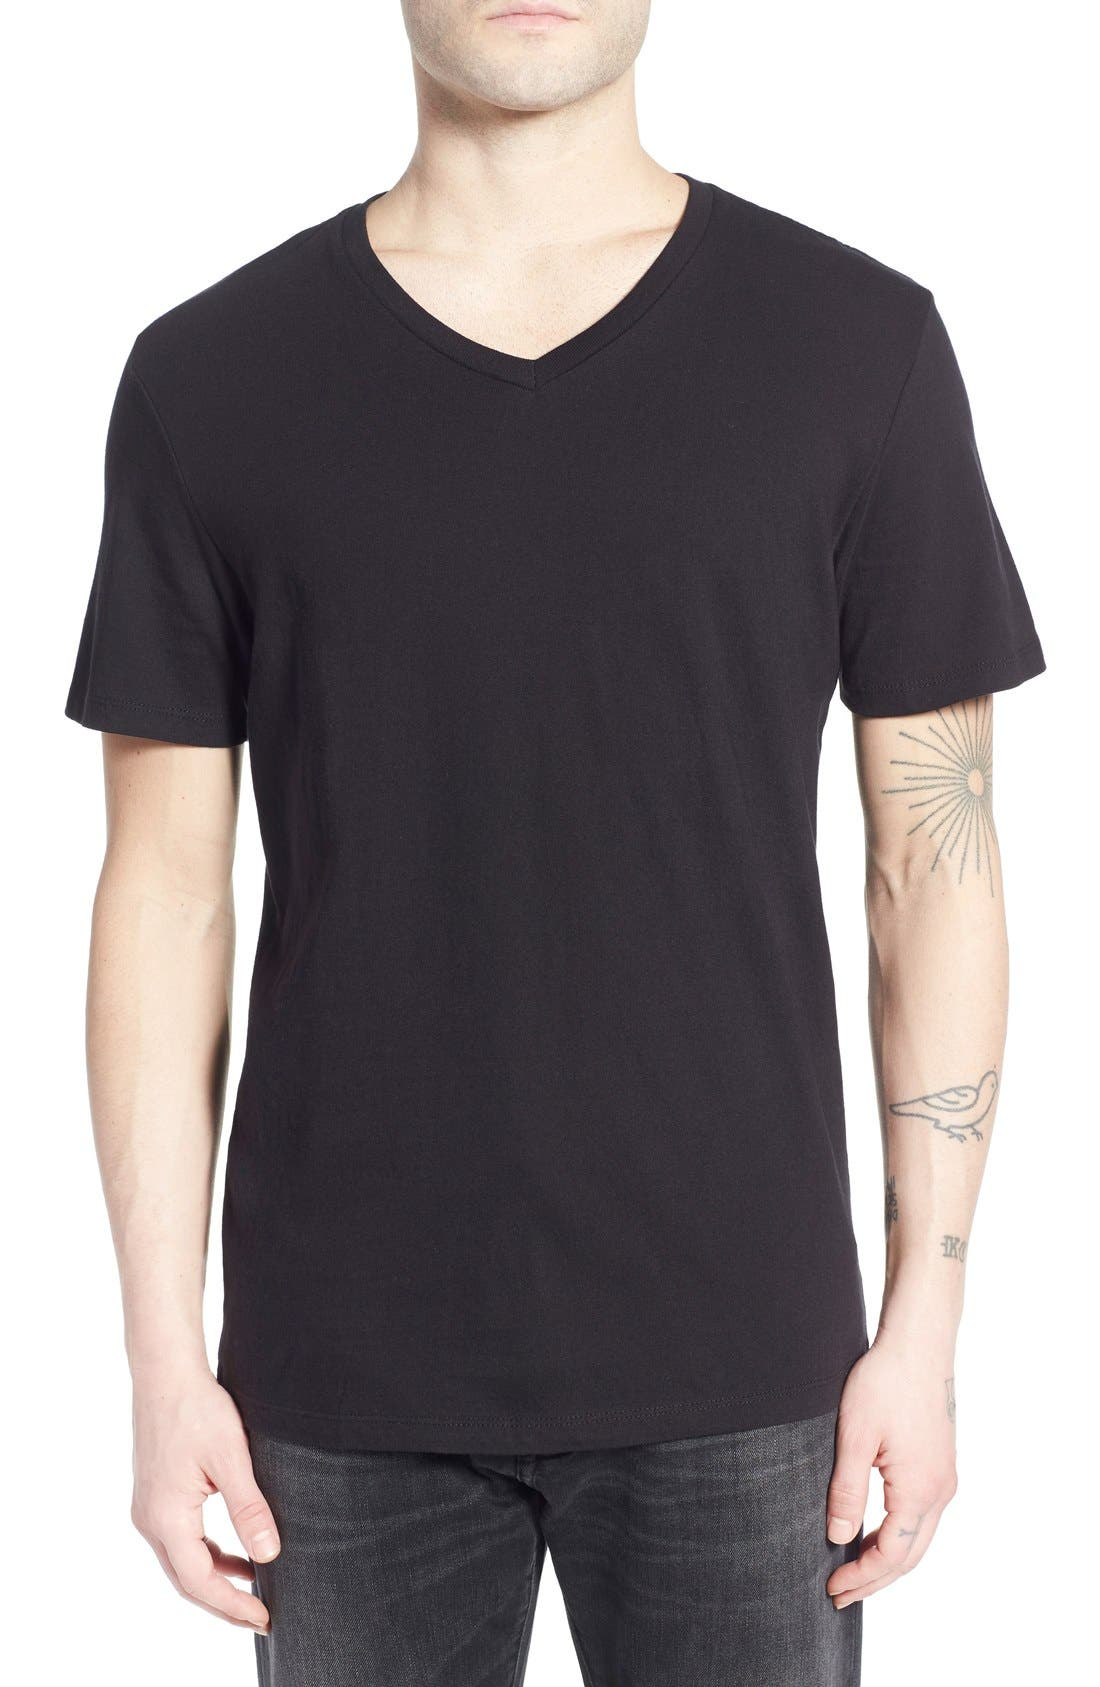 The Rail Slim Fit V-Neck T-Shirt (2 for $30)